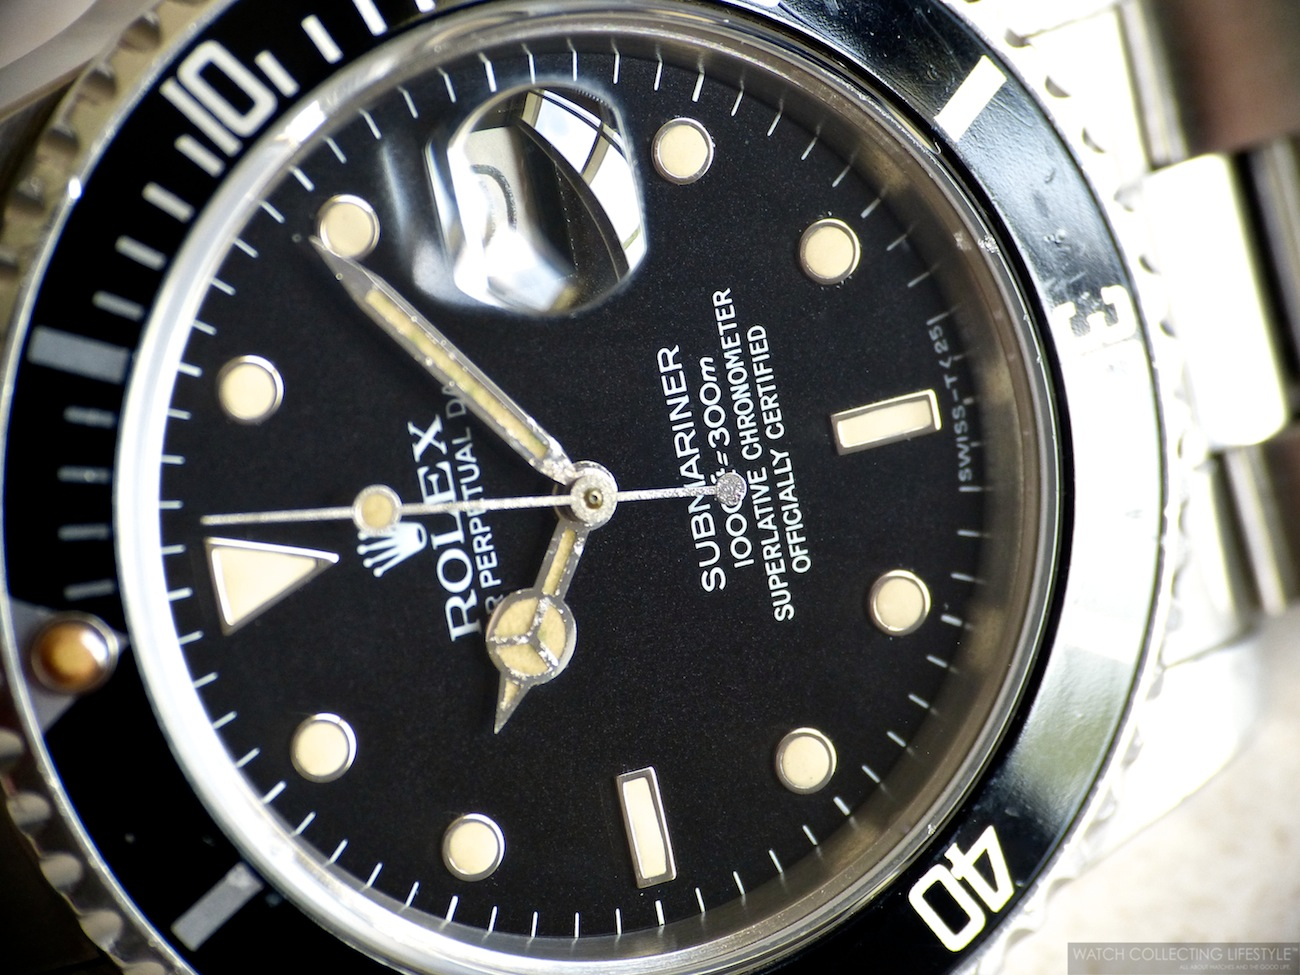 d60cb13ba50 Insider  Rolex Submariner Date ref. 16800 Late Transitional. On the Wrist  Since 1985 at Age 14. — WATCH COLLECTING LIFESTYLE